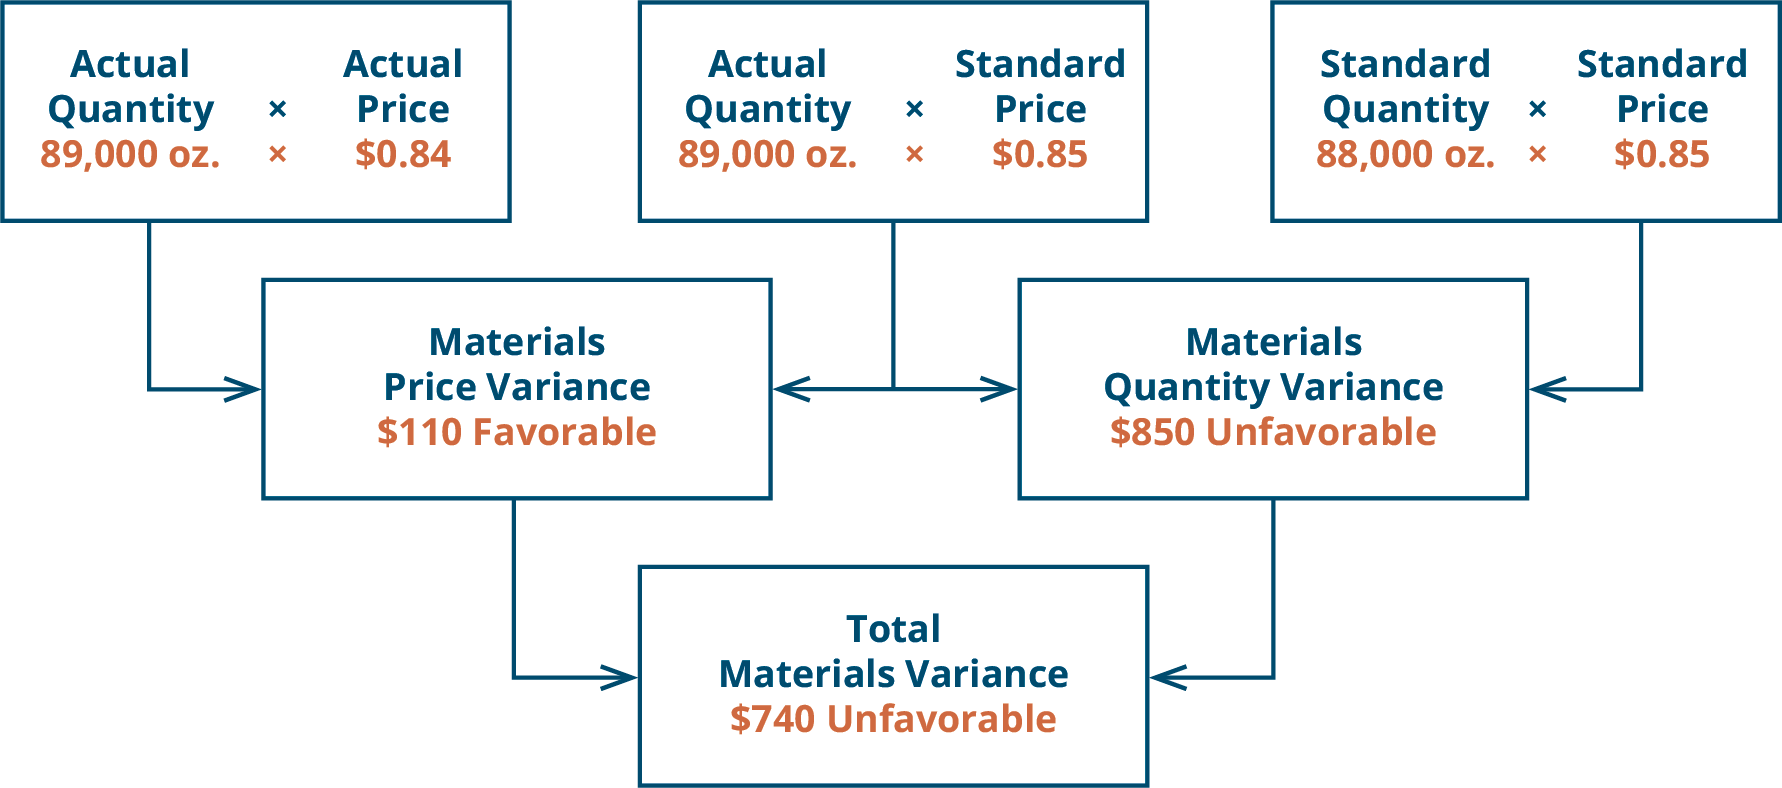 There are three top row boxes. Top row boxes: Actual Quantity (89,000 ounces) times Actual Price (💲0.84) and Actual Quantity (89,000 ounces) times Standard Price (💲0.85) combine to point to Second row box: Direct Material Price Variance 💲890 Favorable. Top row boxes: Actual Quantity (89,000 ounces) times Standard Price (💲0.85) and Standard Quantity (88,000 ounces) times Standard Price (💲0.85) combine to point to Second row box: Direct Materials Quantity Variance 💲850 Unfavorable. Notice the middle top row box was used for both variances. The two second row boxes: Direct Material Price Variance 💲890 Favorable and Direct Materials Quantity Variance 💲850 Unfavorable combine to point to the one bottom row box: Total Direct Material Variance 💲40 Favorable.